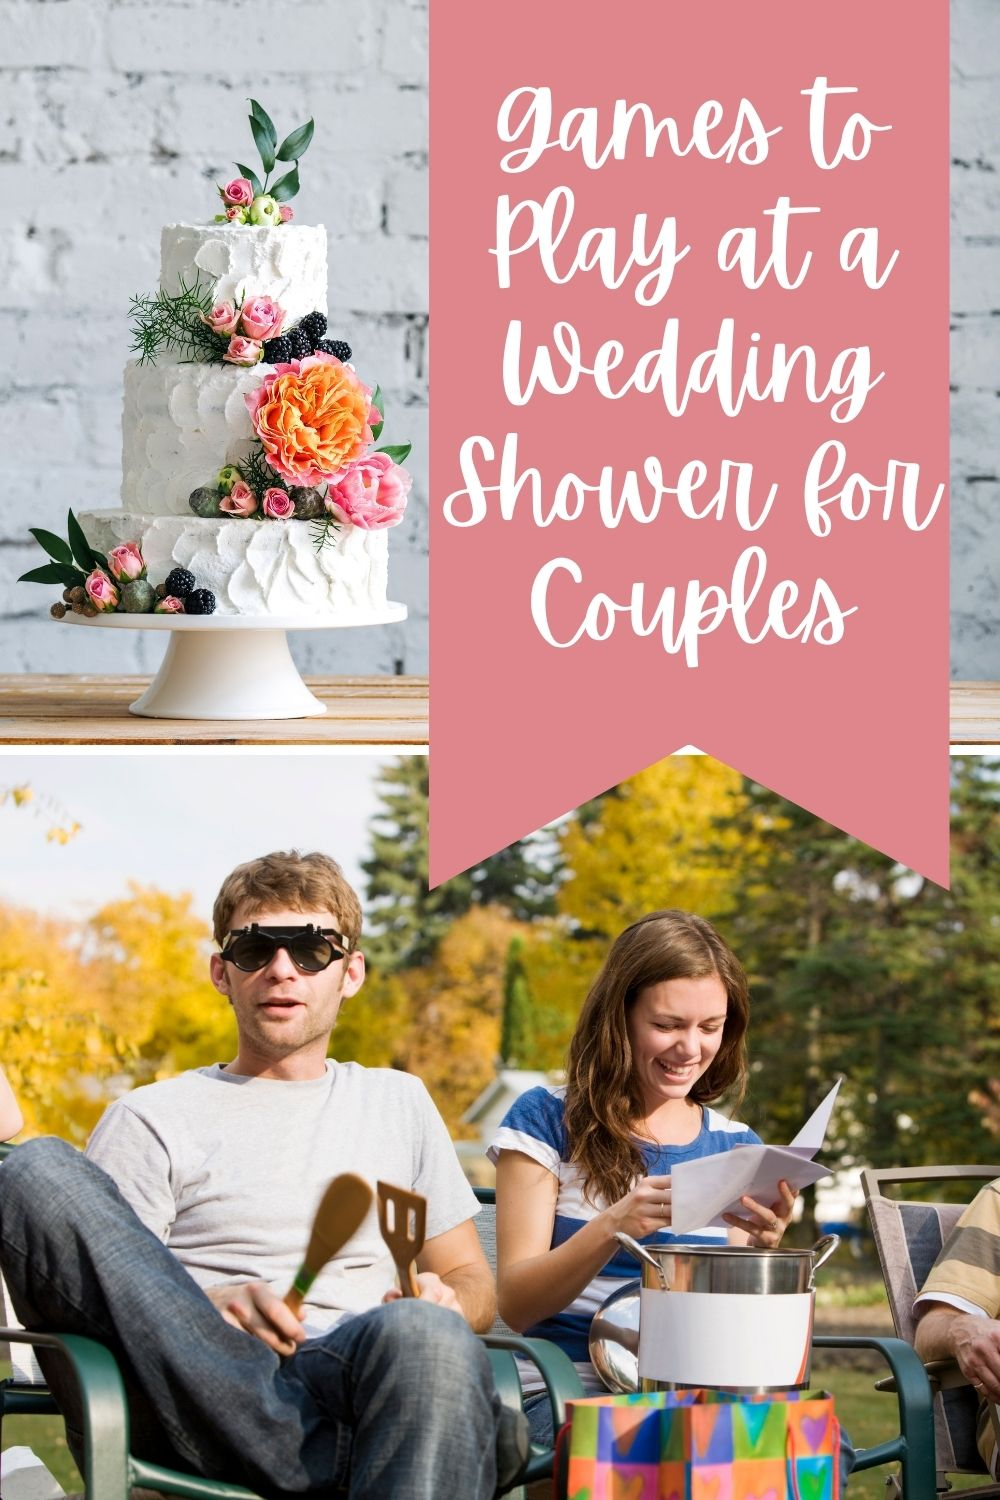 Games to Play at a Wedding Shower For Couples